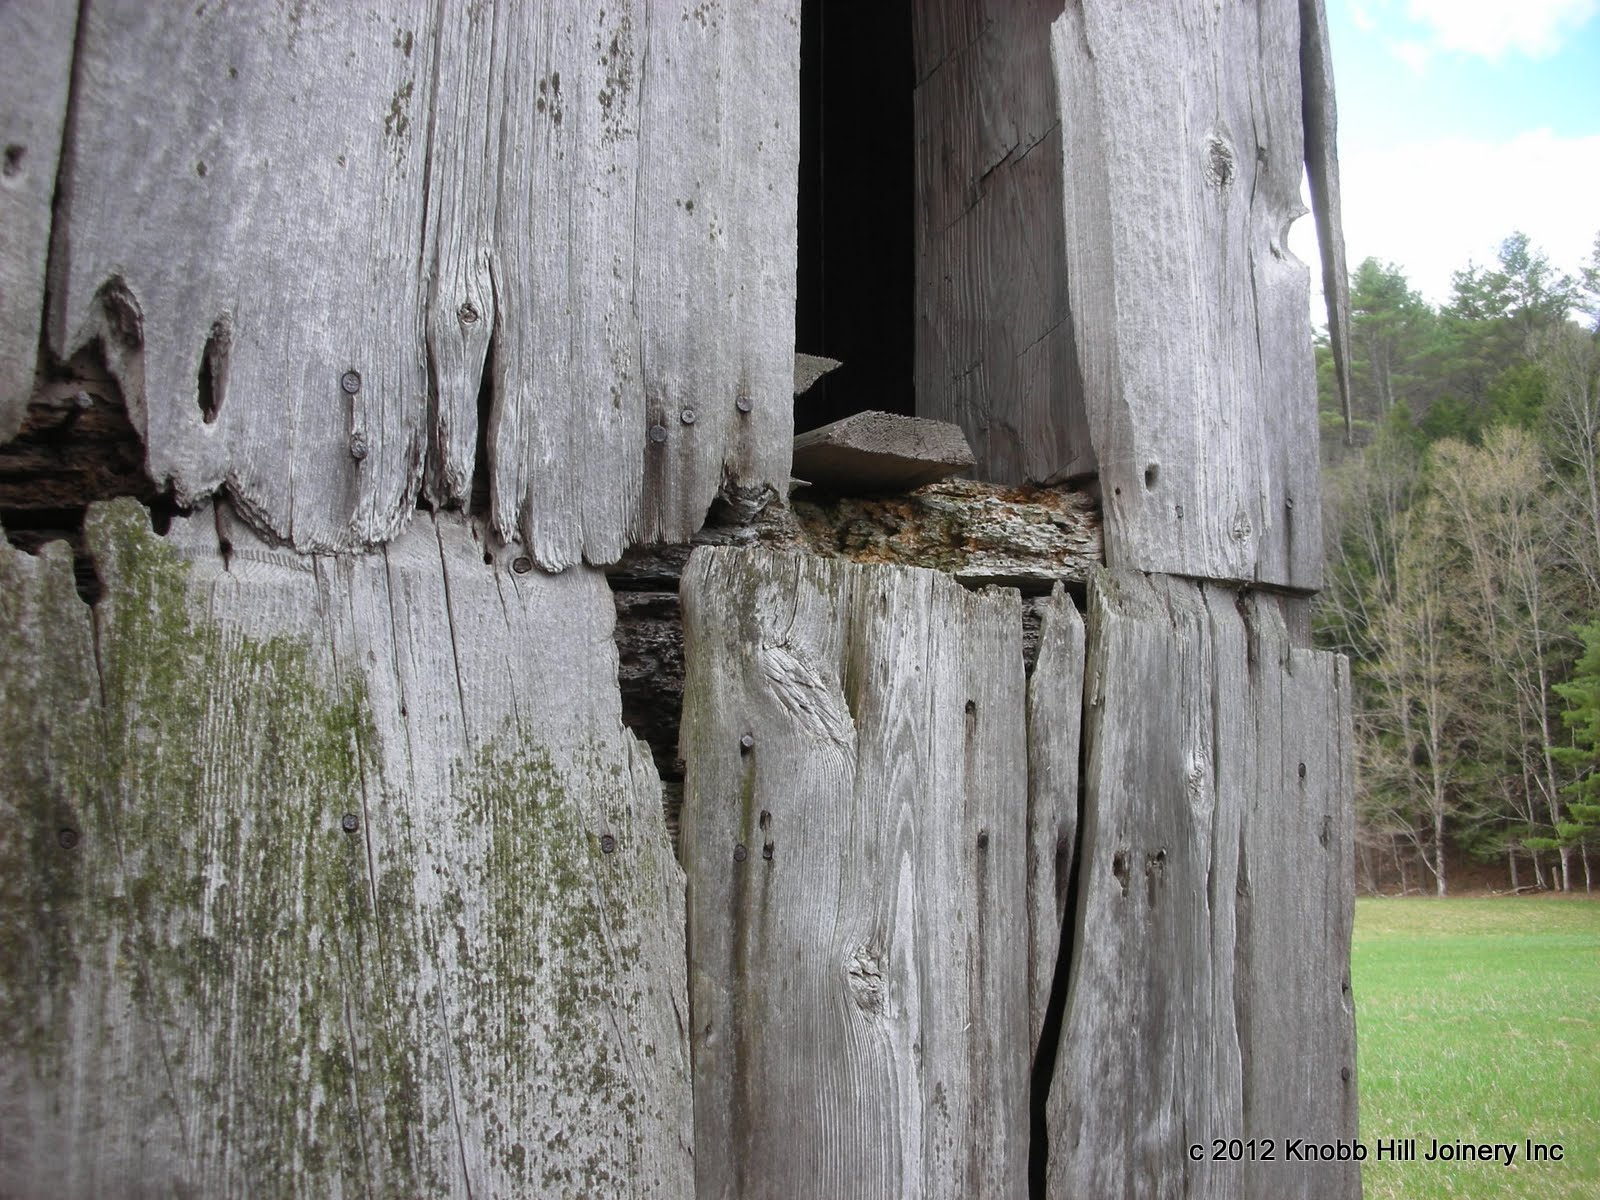 The ends of the vertical sheathing boards were splayed and lapped over one another.  The visible rot to the middle girt only hinted at the extent of the damage.